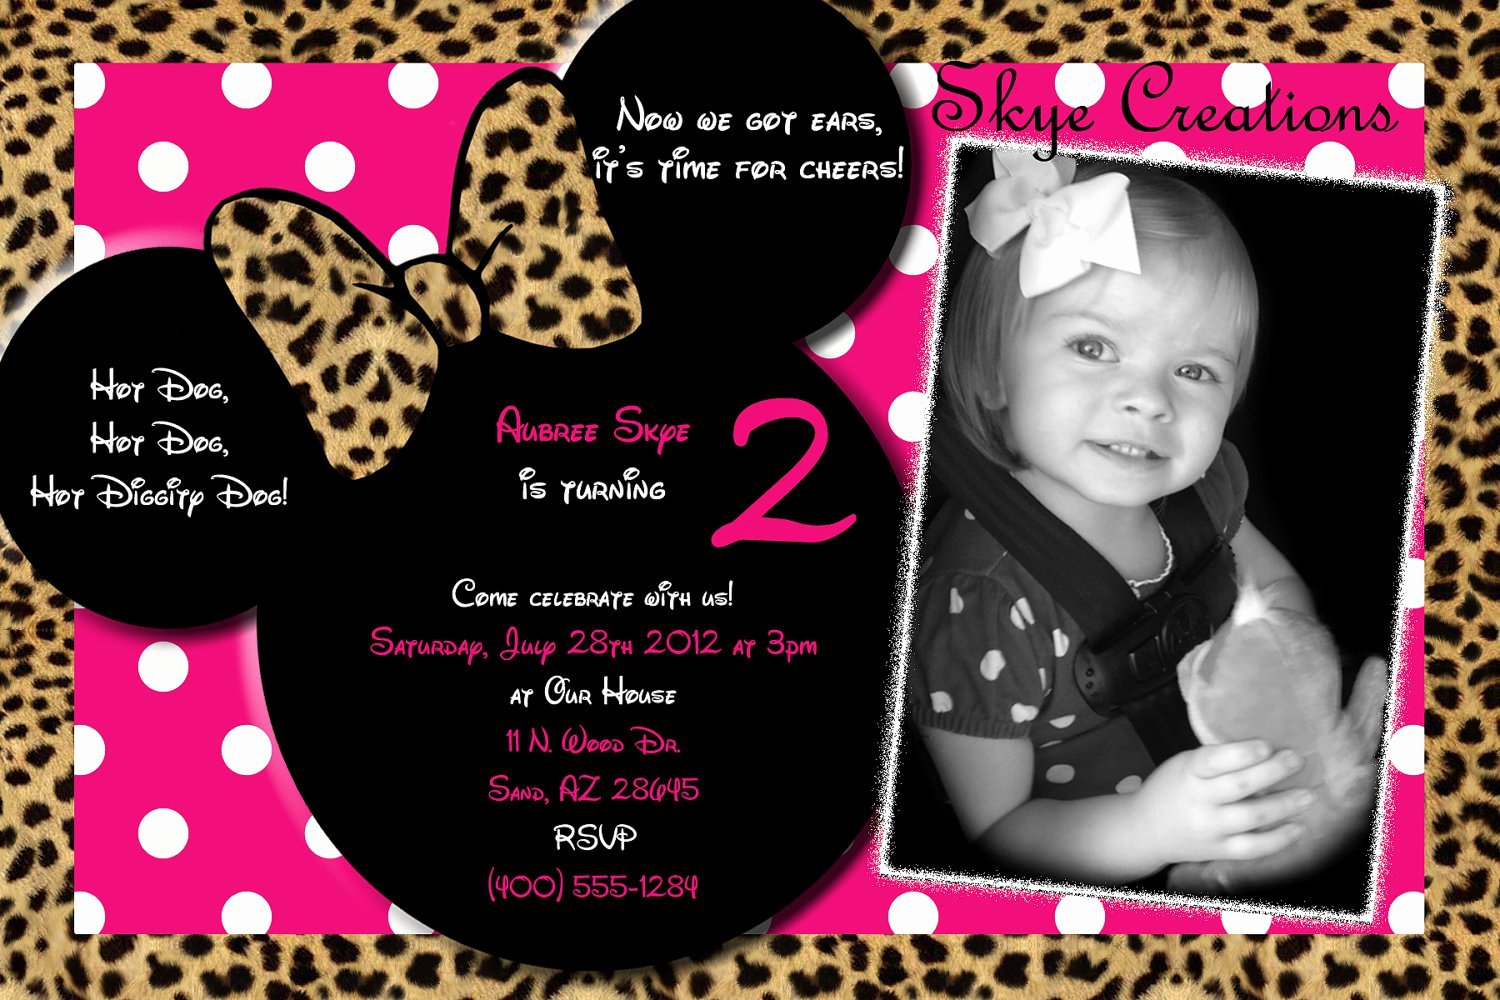 Minnie Mouse Party Invitations Elegant Personalized Minnie Mouse Birthday Invitations